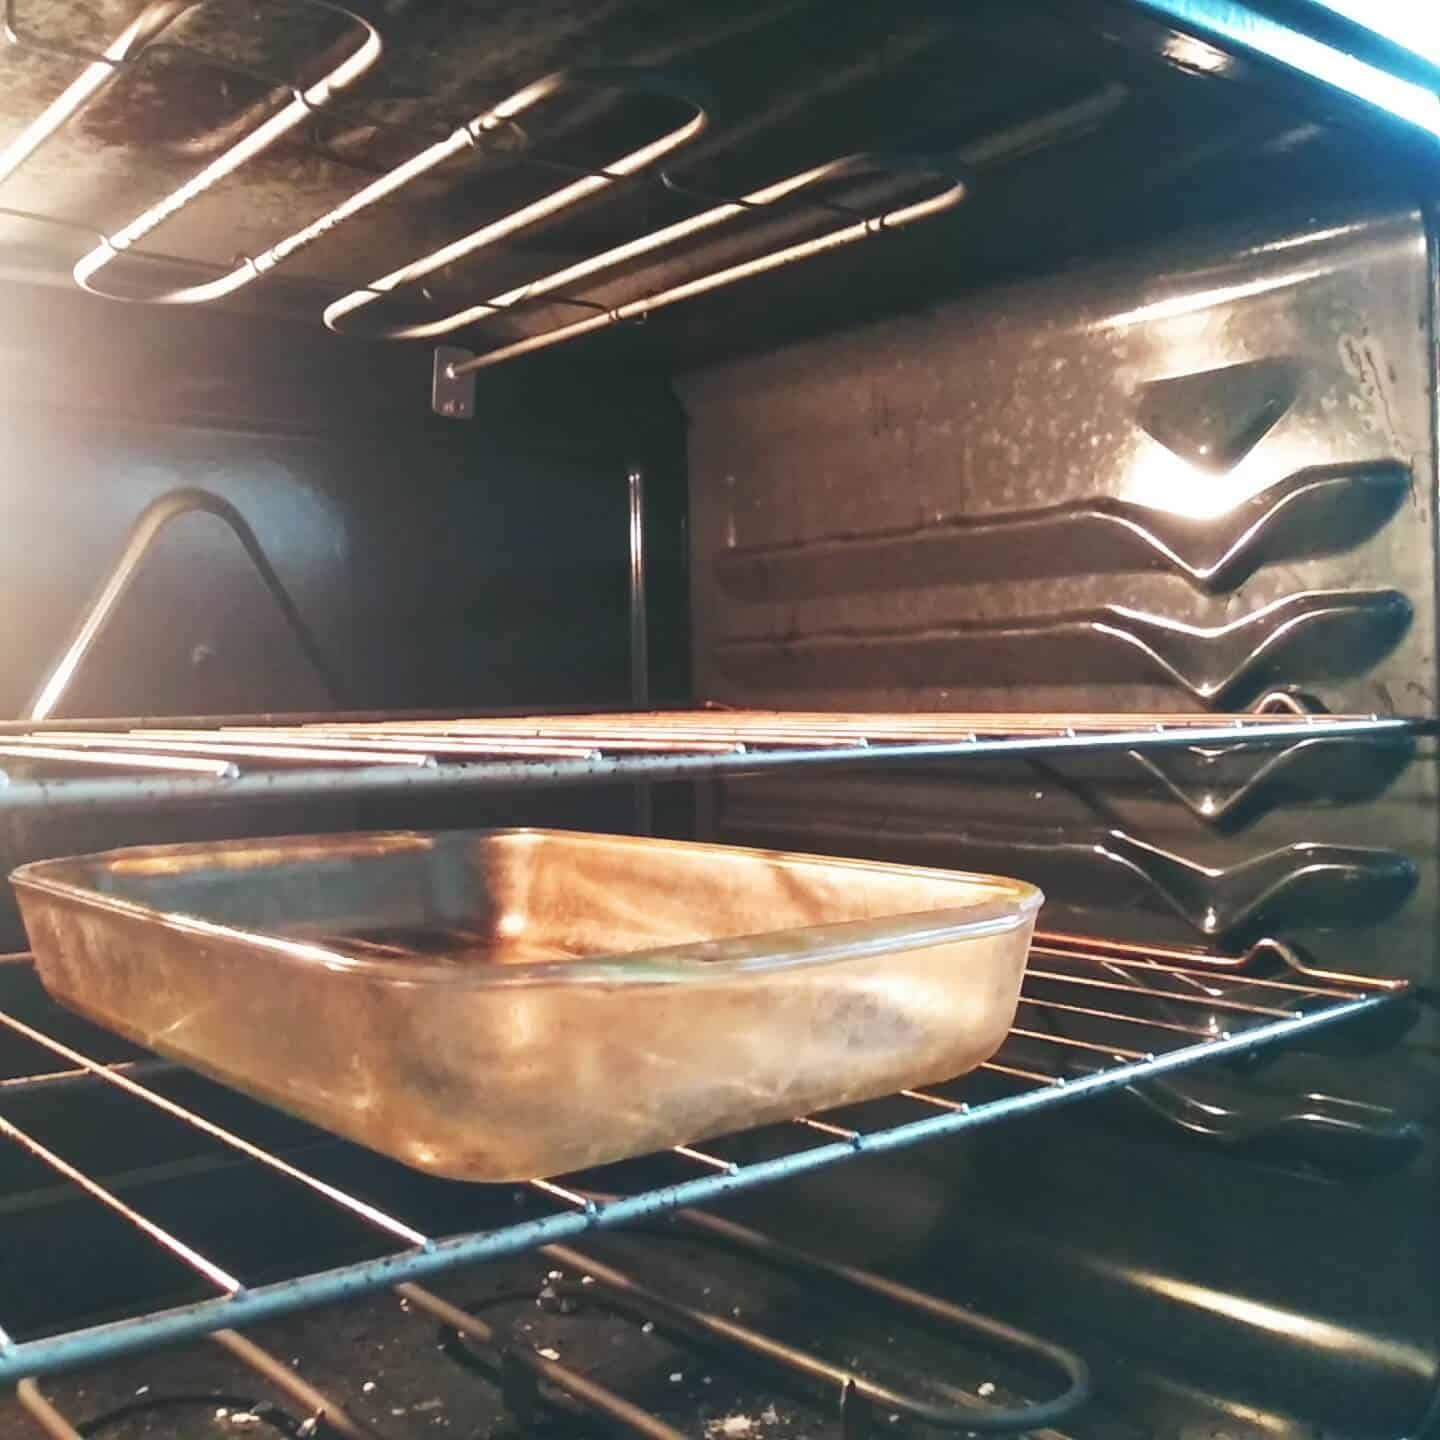 Glass Dish in the Oven